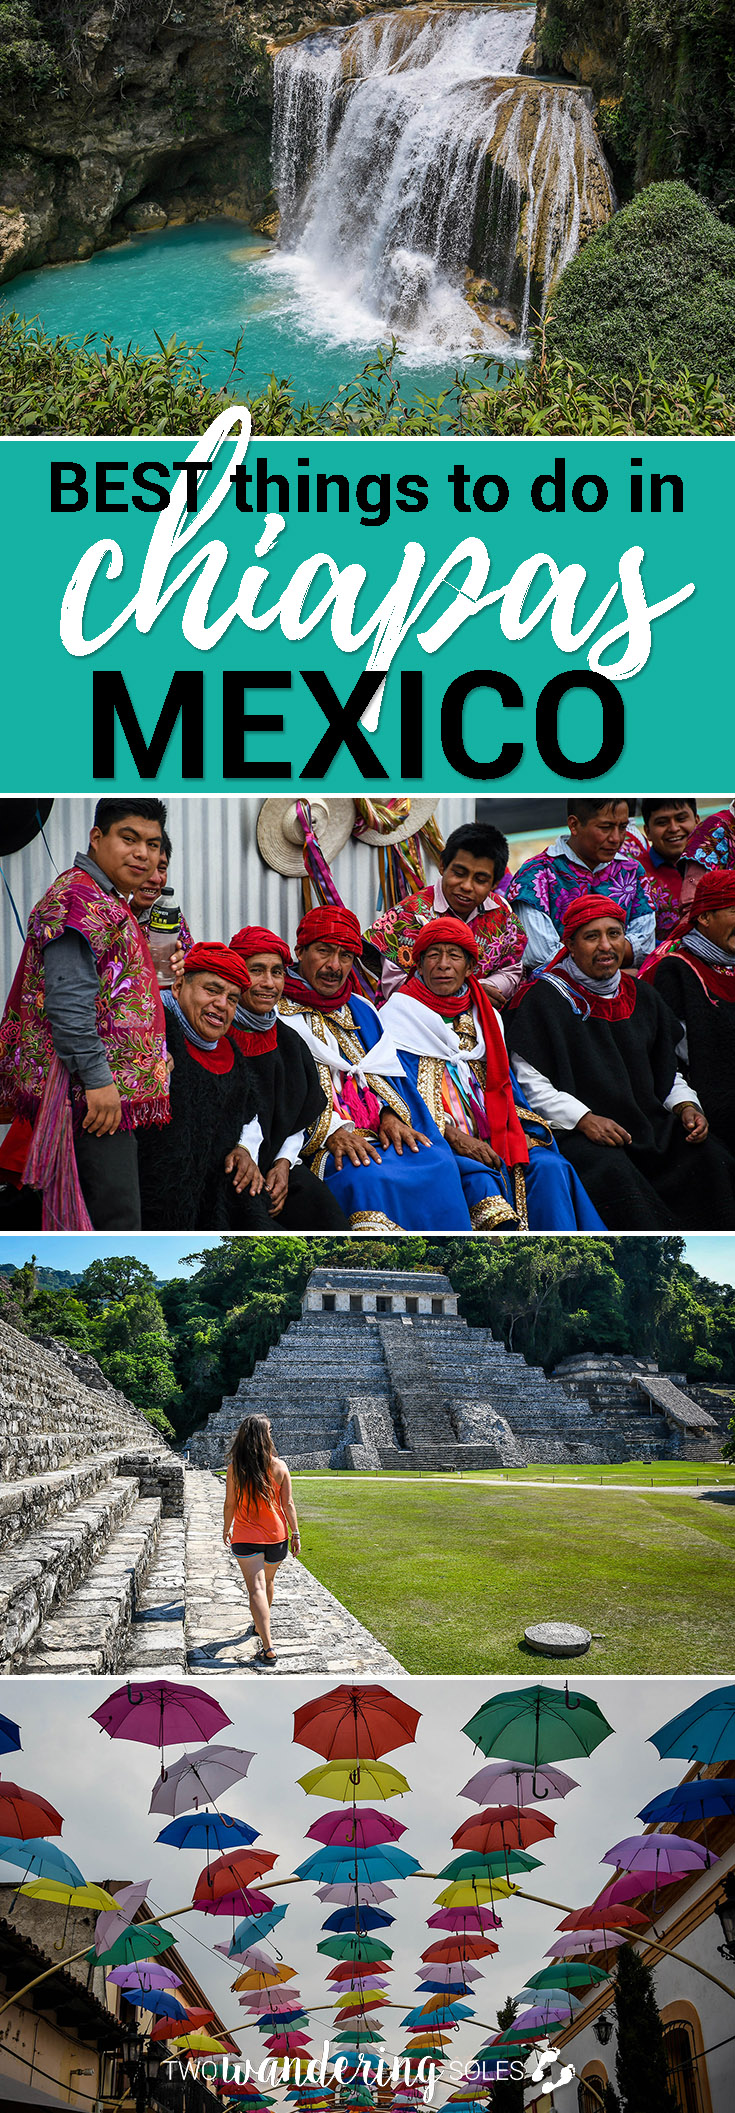 Best Things to Do in Chiapas Mexico